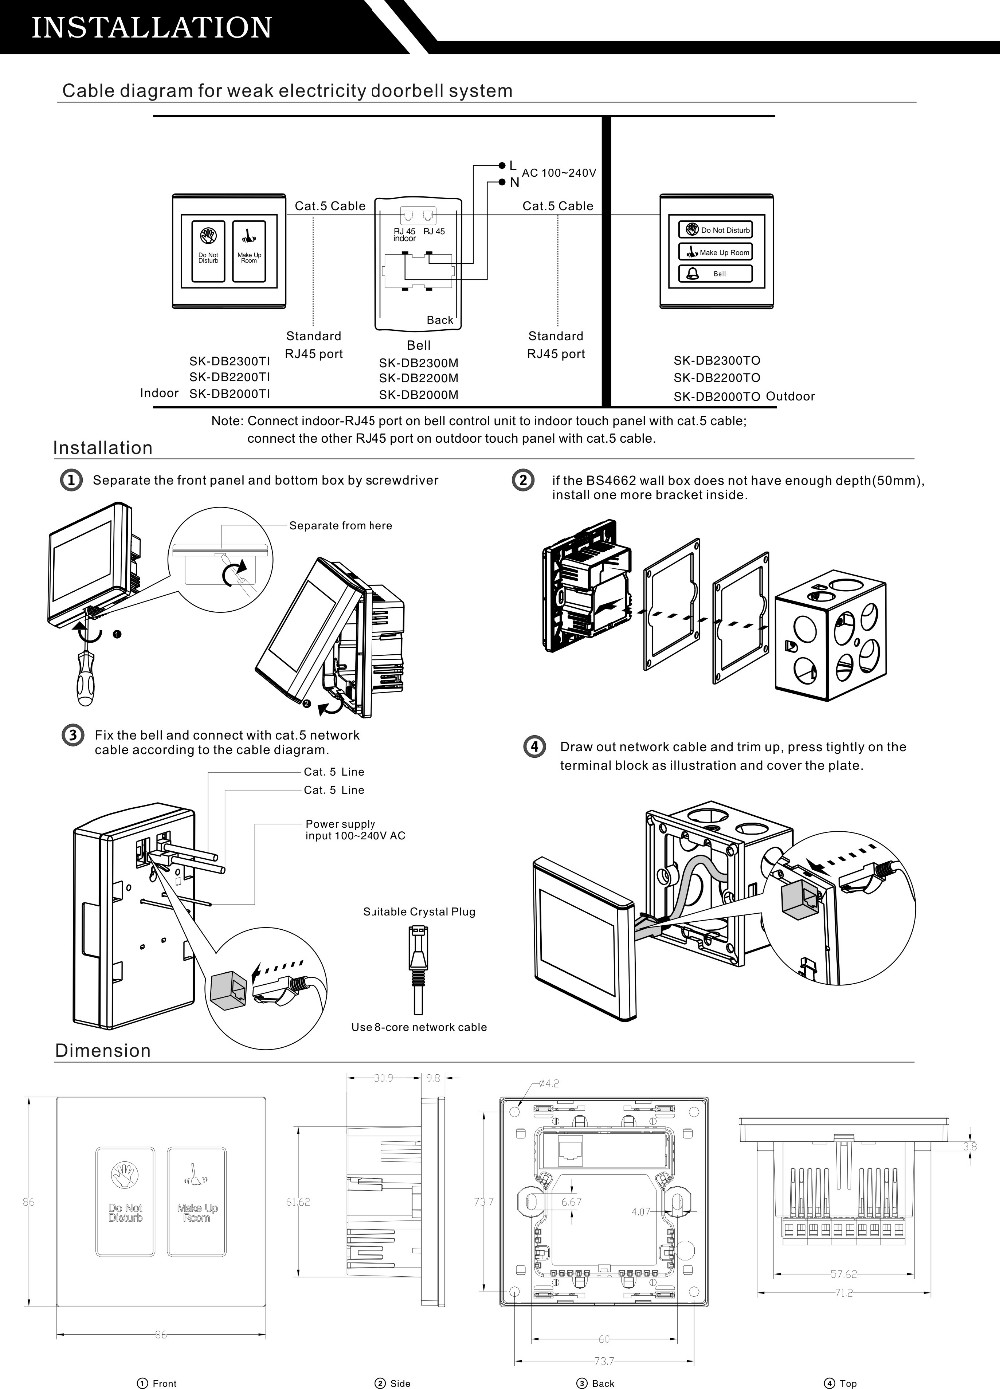 Cat 5 Cable Easy Wiring Hotel Touch Dnd Doorbell Switch